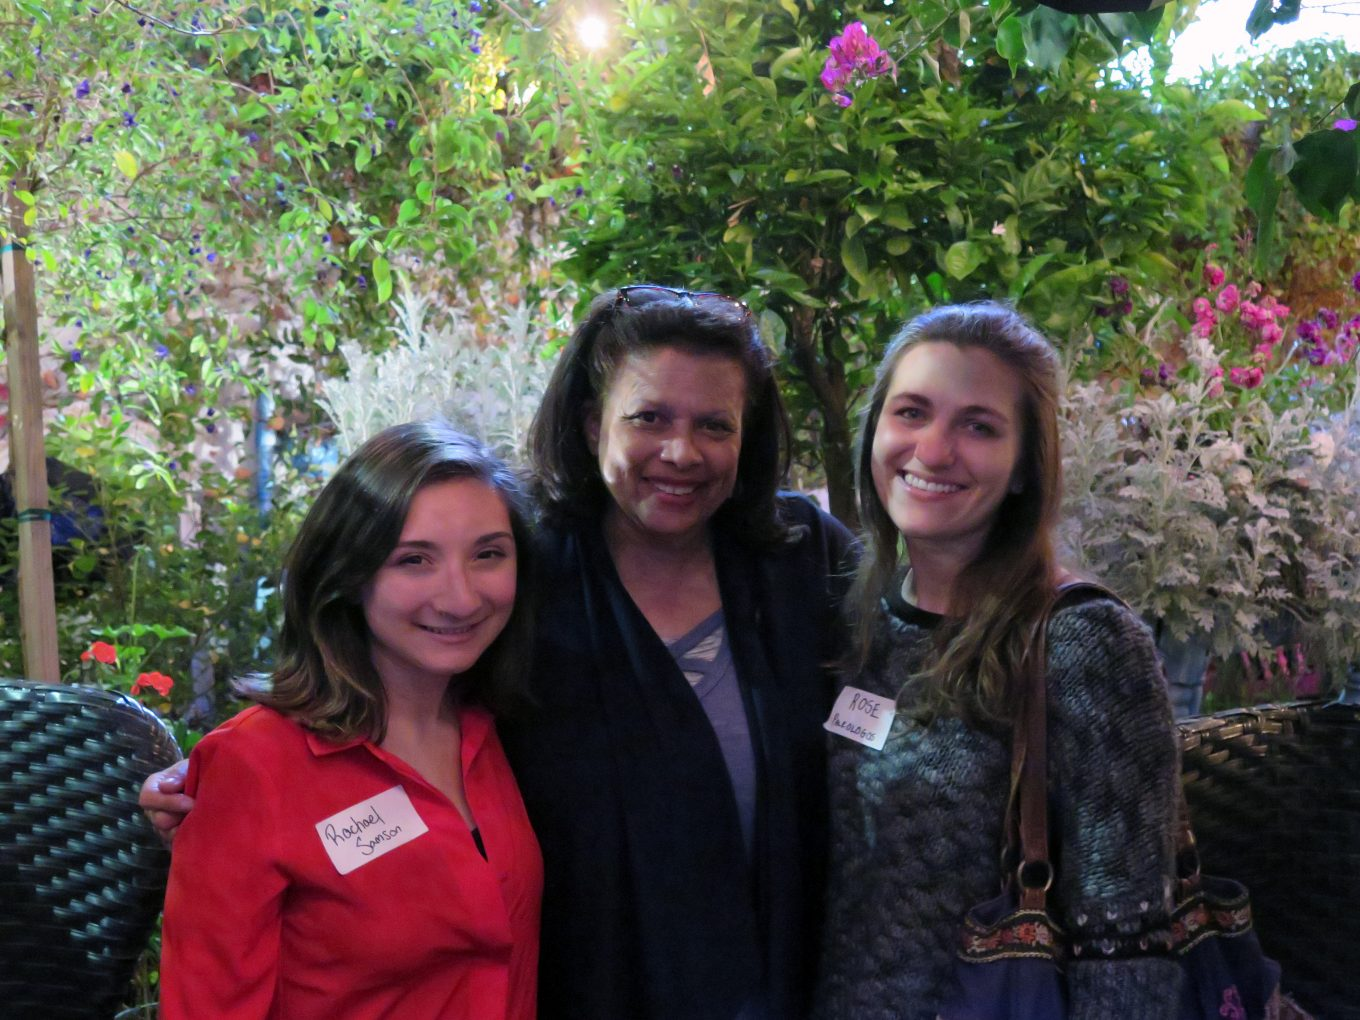 Nanci Isaacs '79 posing with two other alumnae